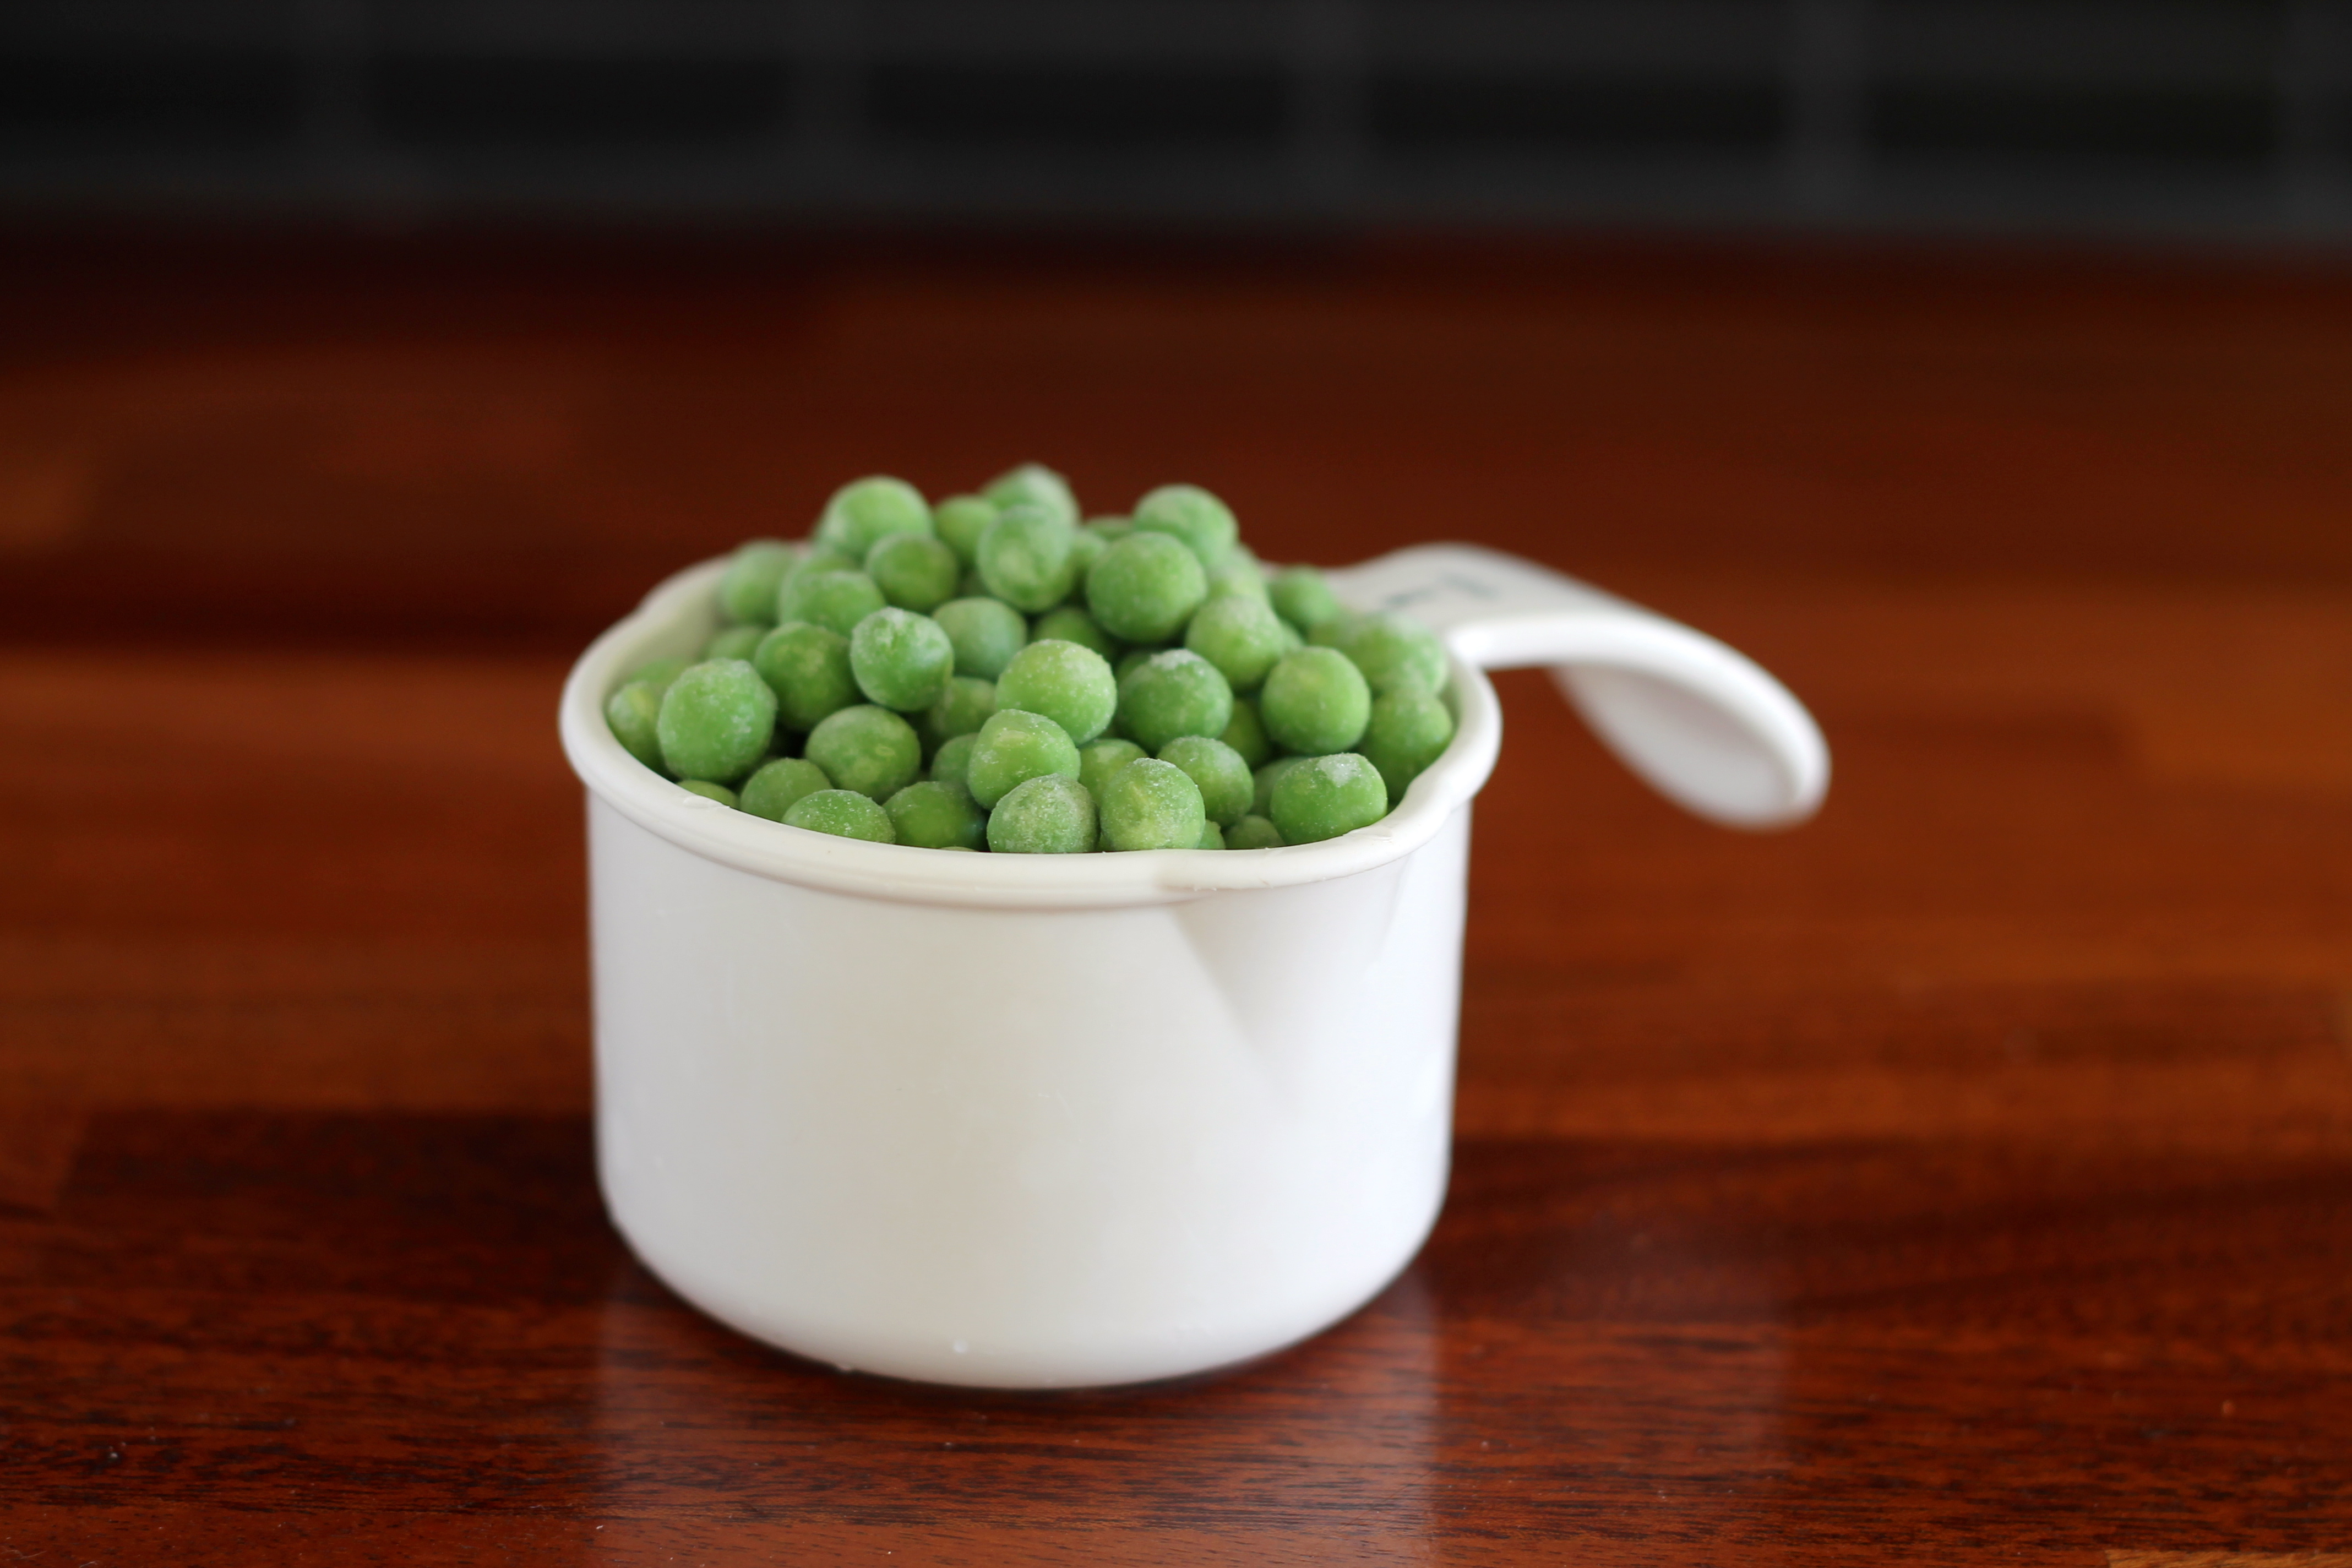 cup of peas